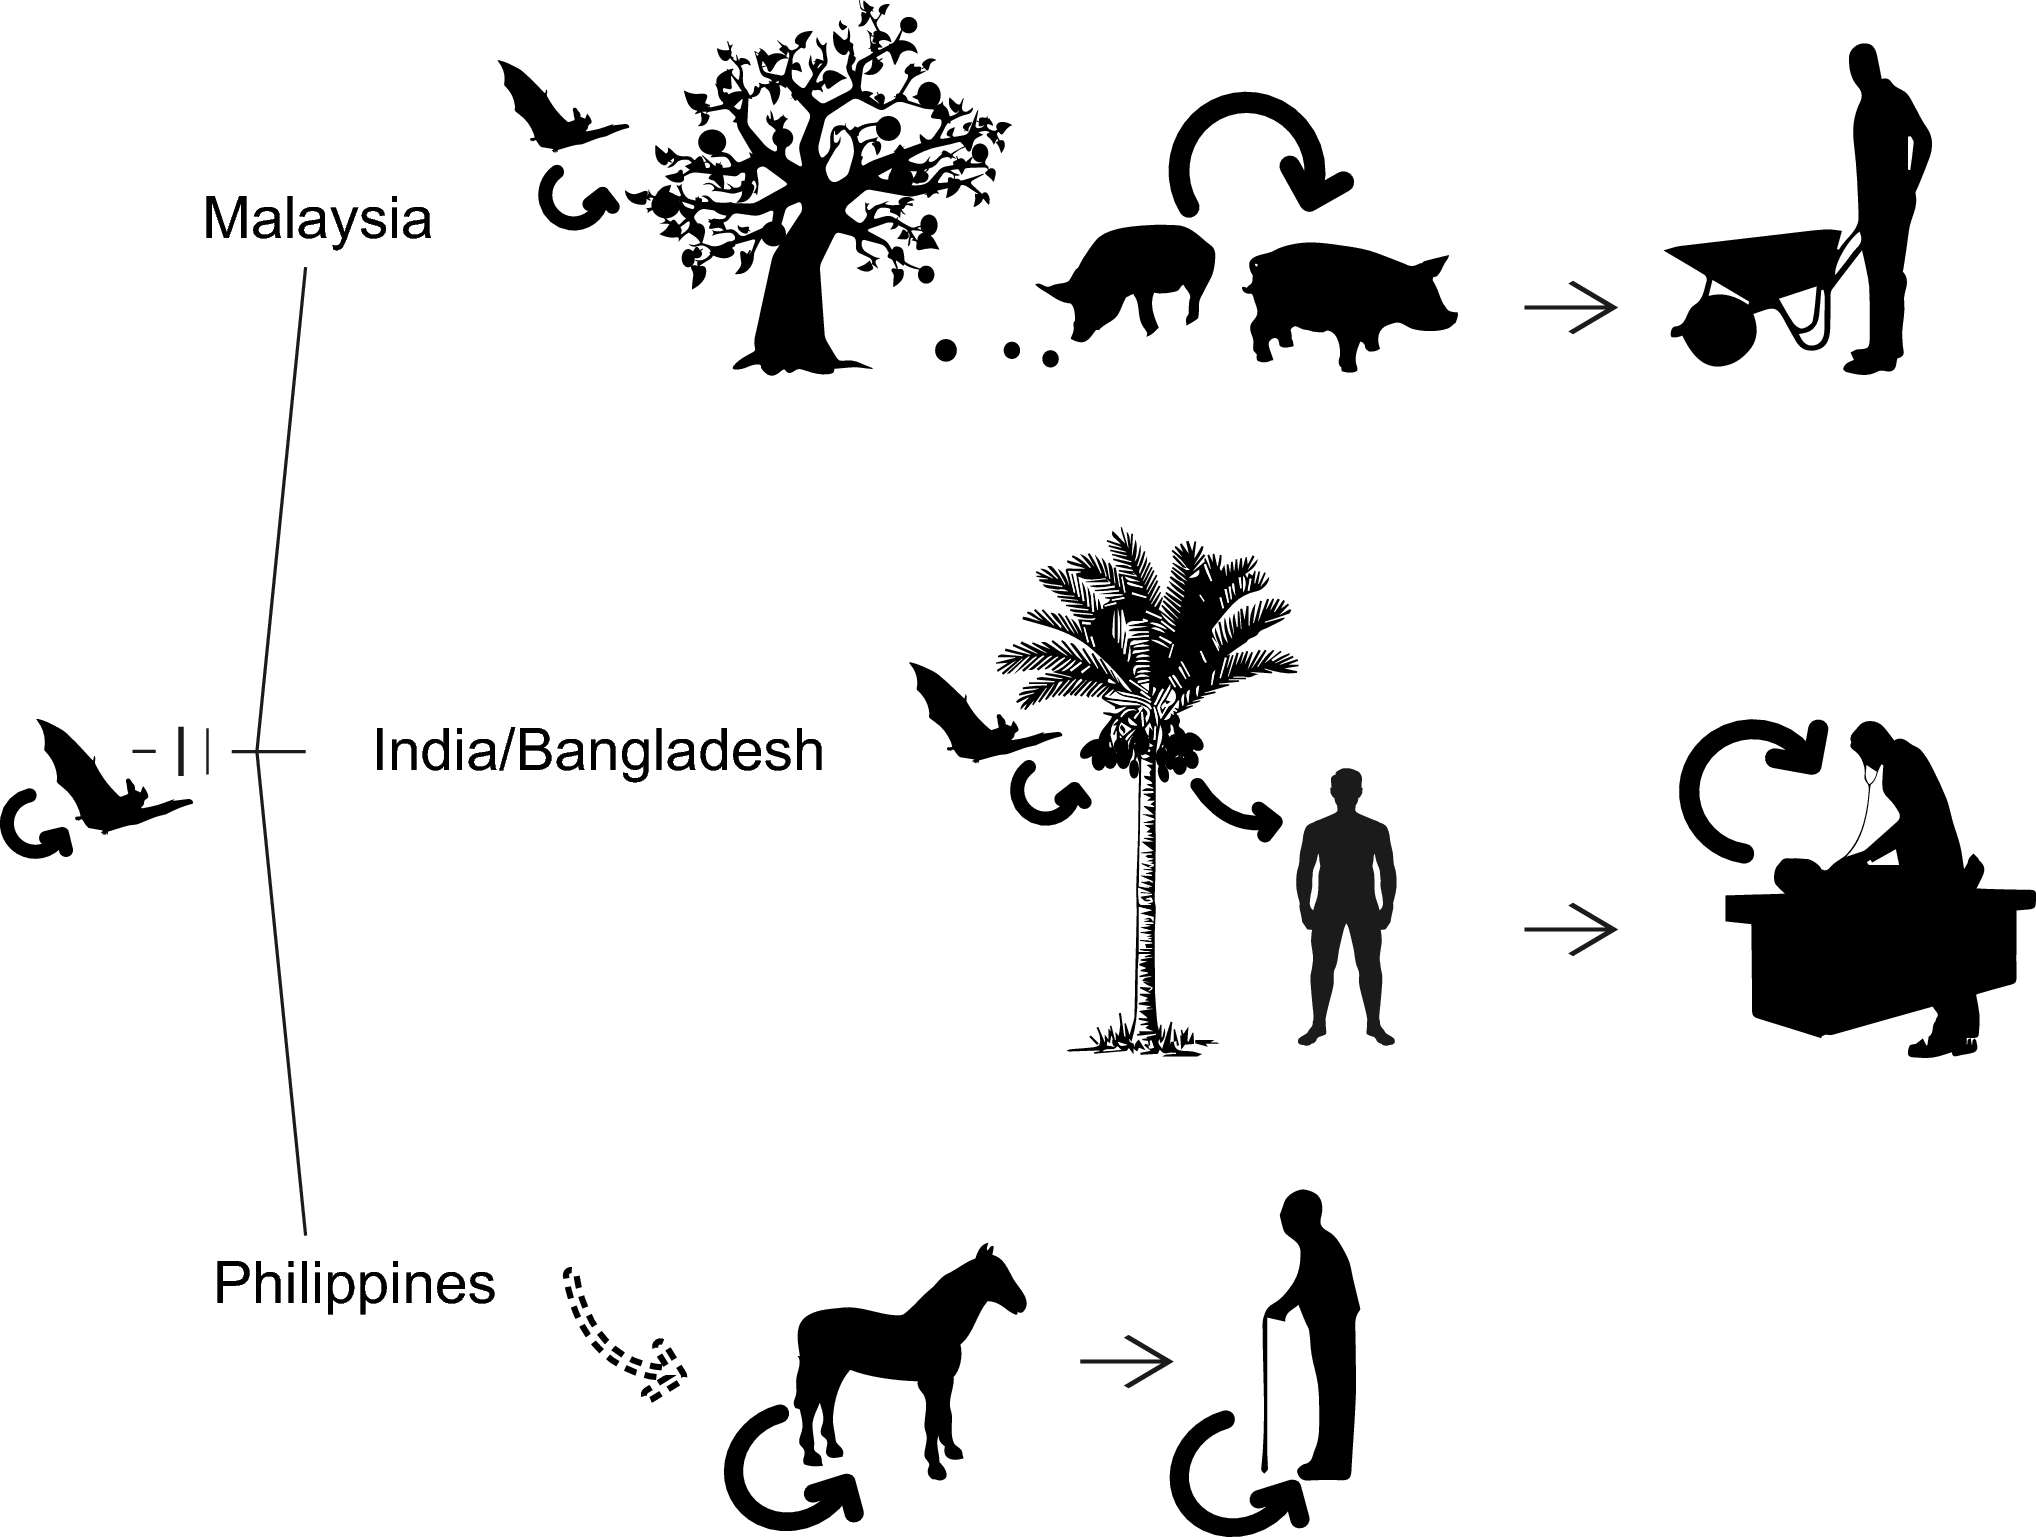 Phylogeography, Transmission, and Viral Proteins of Nipah